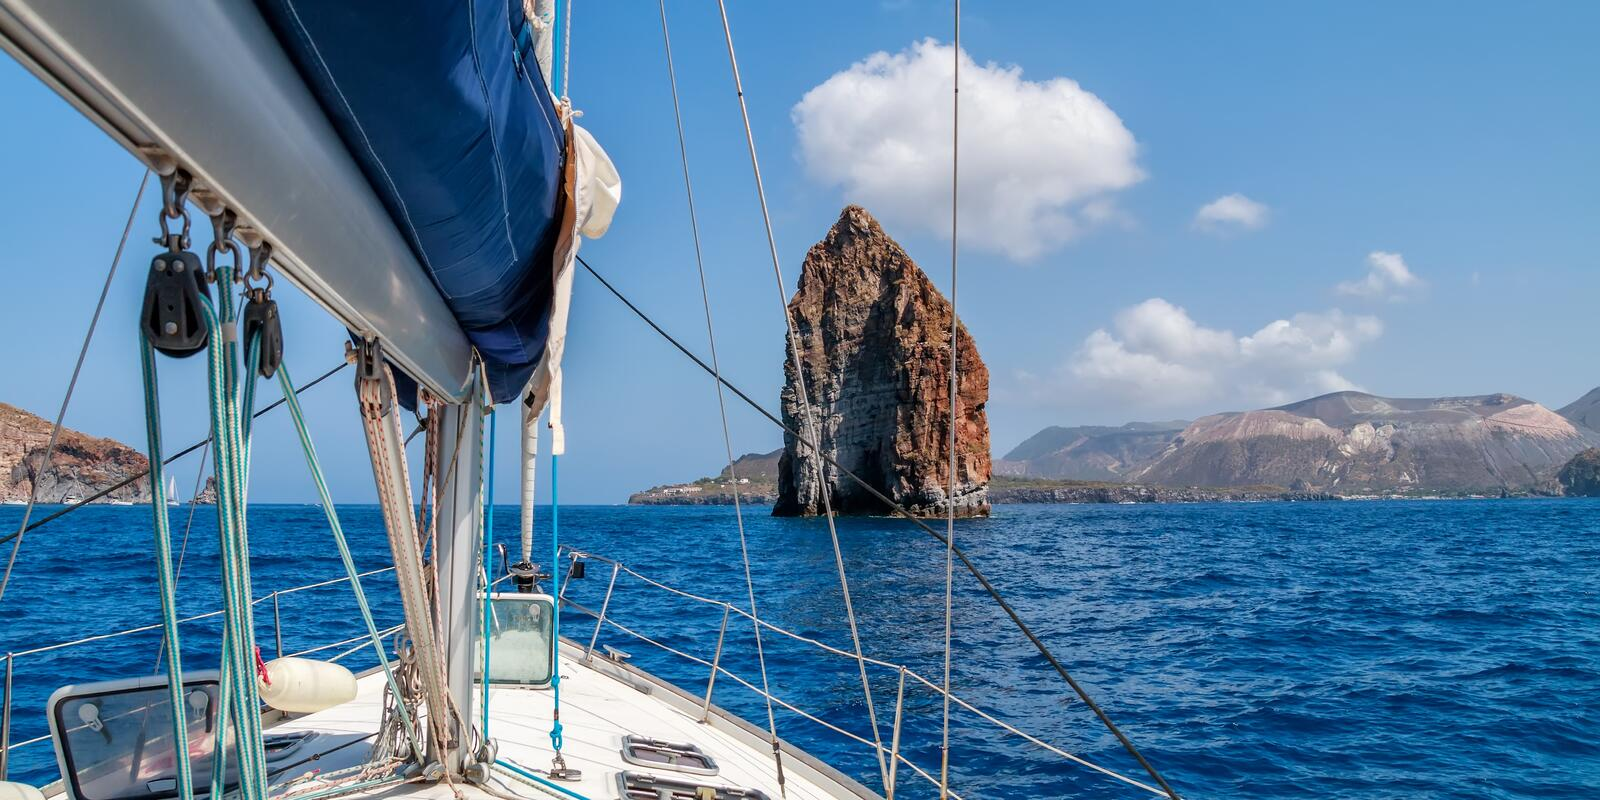 A relaxing week of sailing and discovery of Aeolian islands